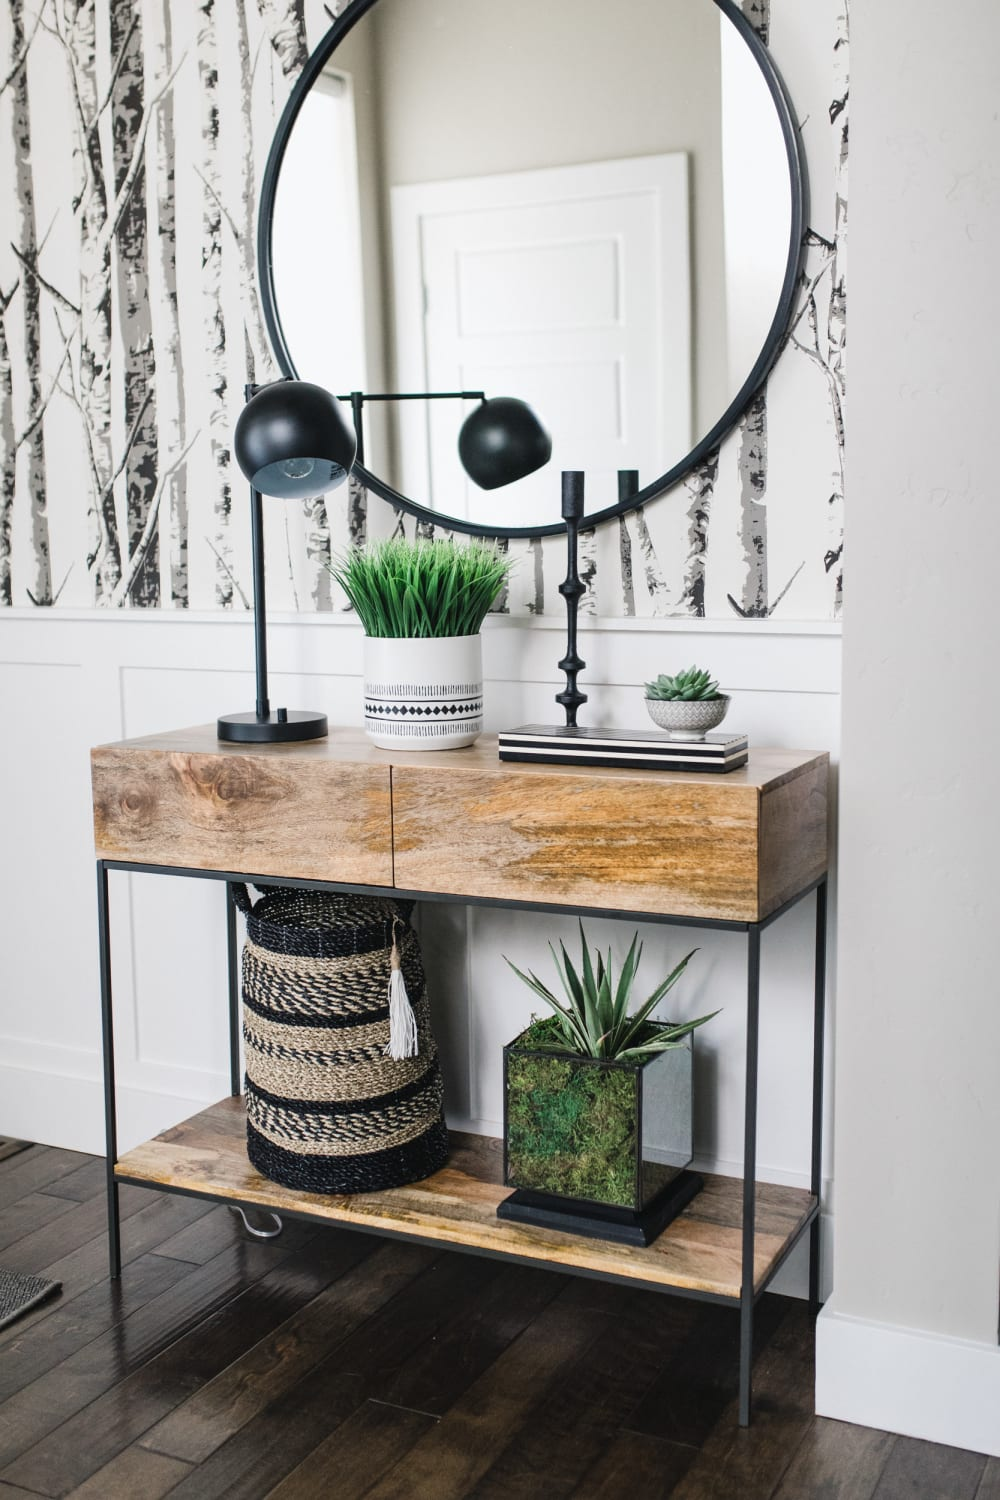 """Biophilic entryway with greenery, natural materials and a wallpaper depicting trees in a forest.<span class=""""sr-only""""> (opened in a new window/tab)</span>"""